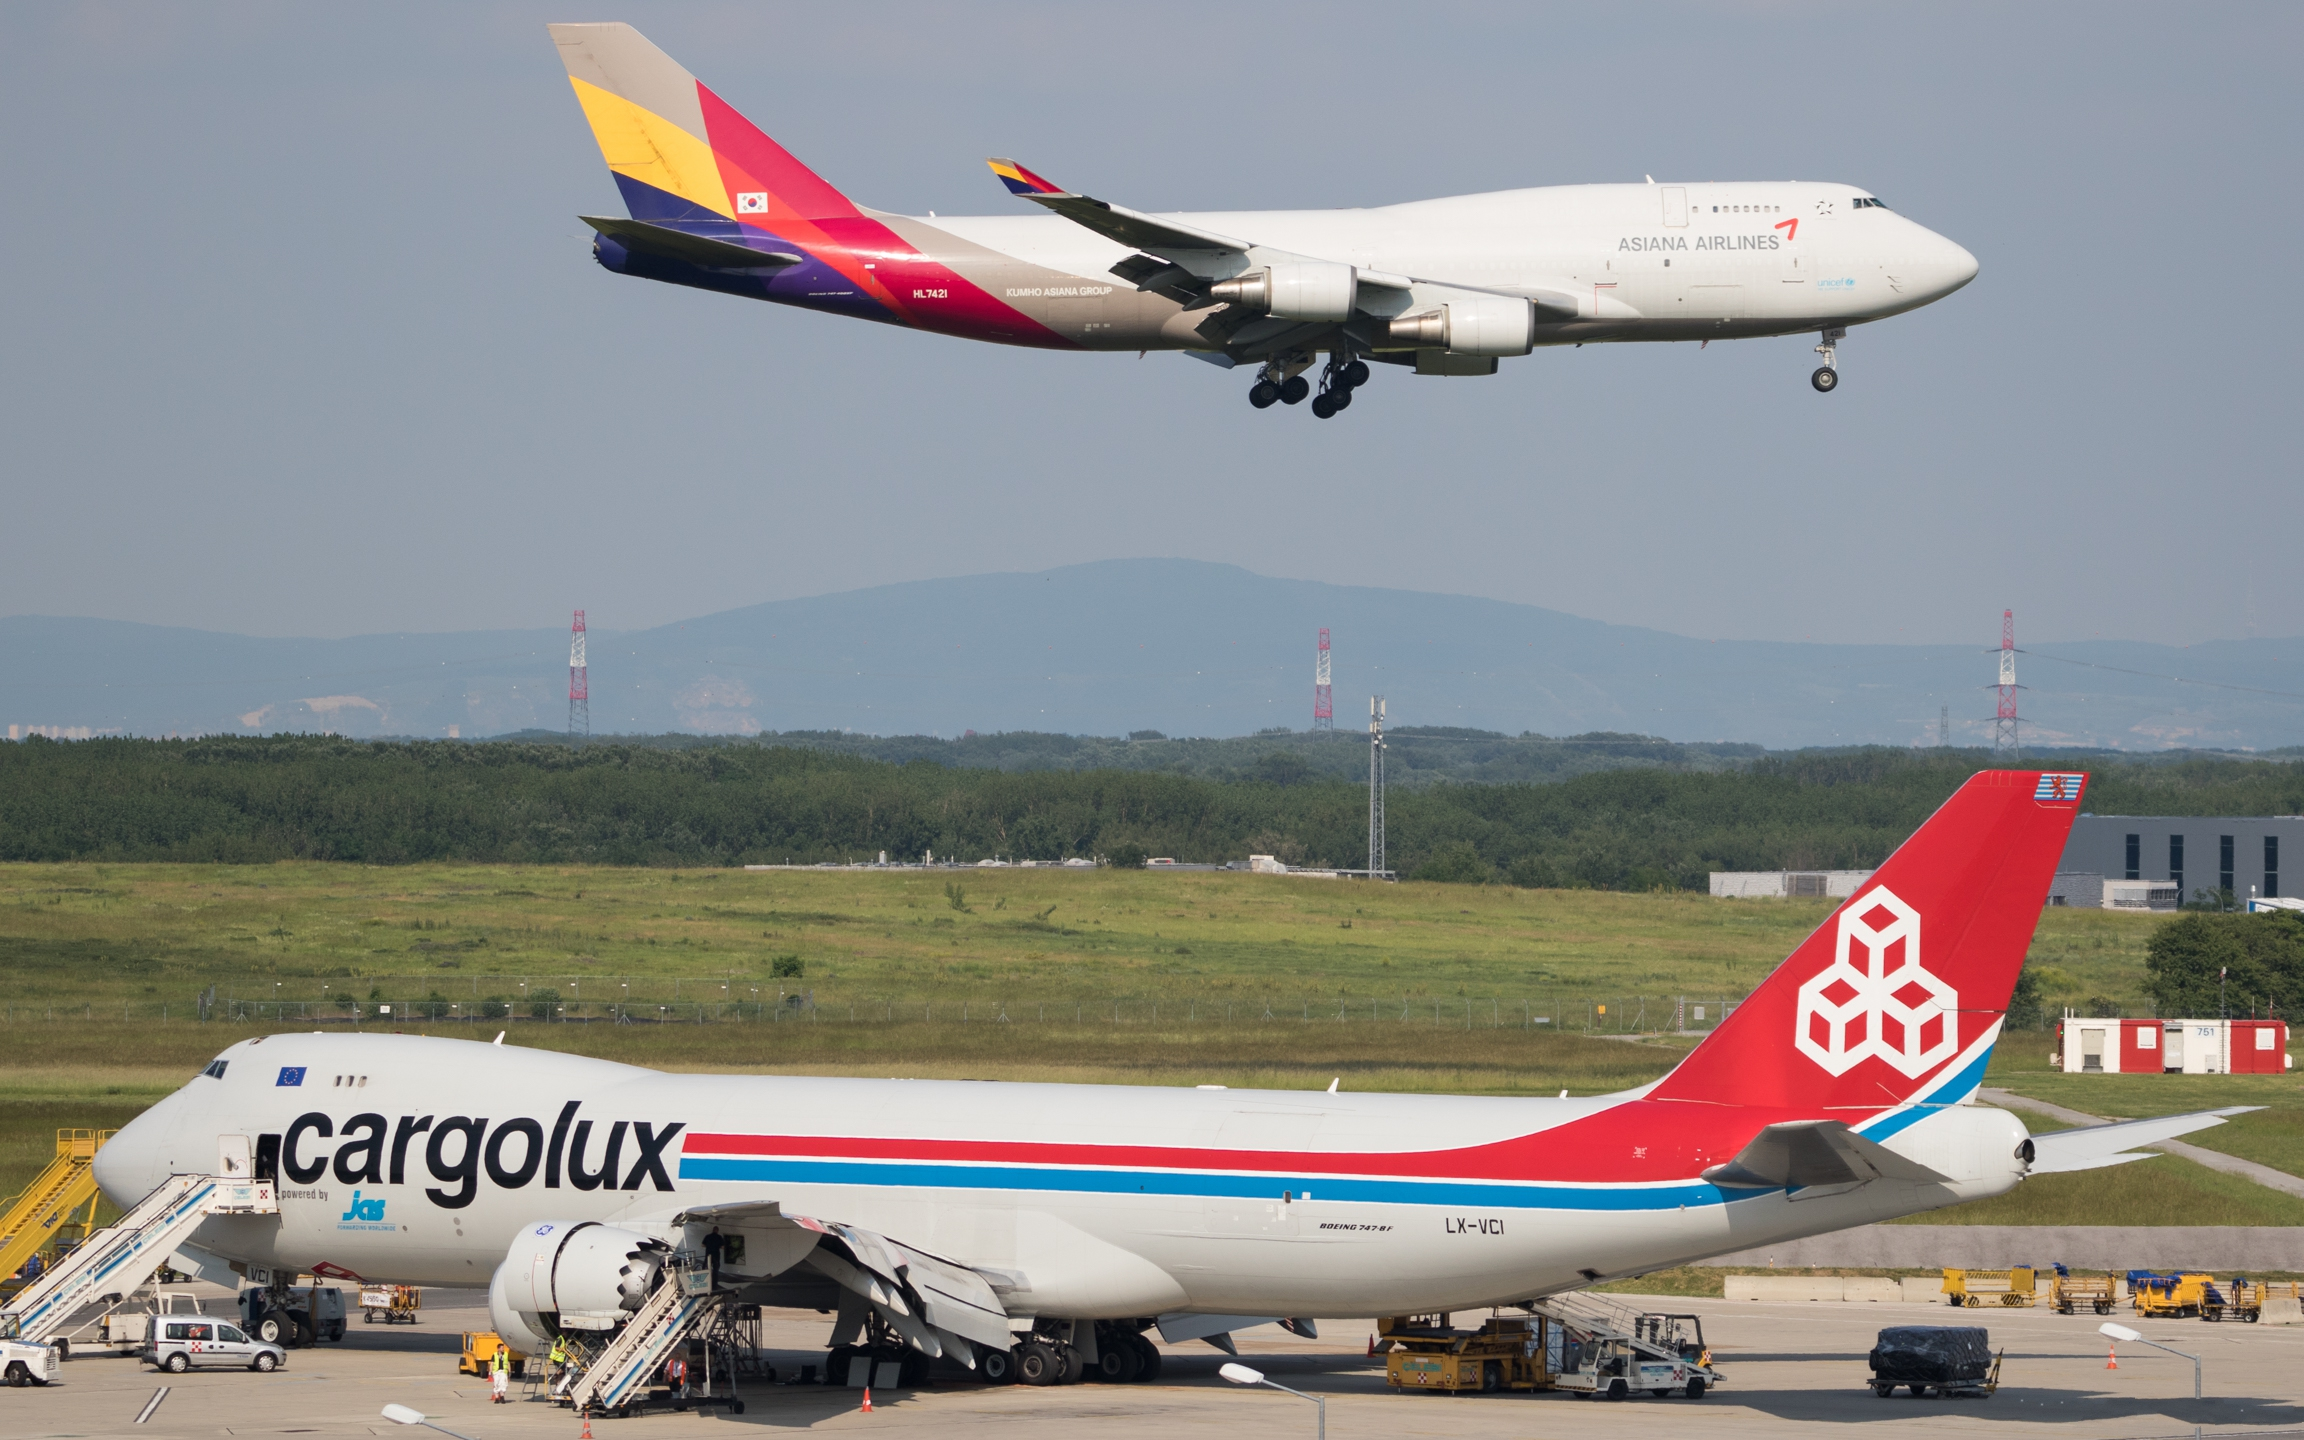 file cargolux boeing 747 8 lx vci asiana cargo boeing 747 400f rh commons wikimedia org Boeing 747 Name Boeing 747 Name